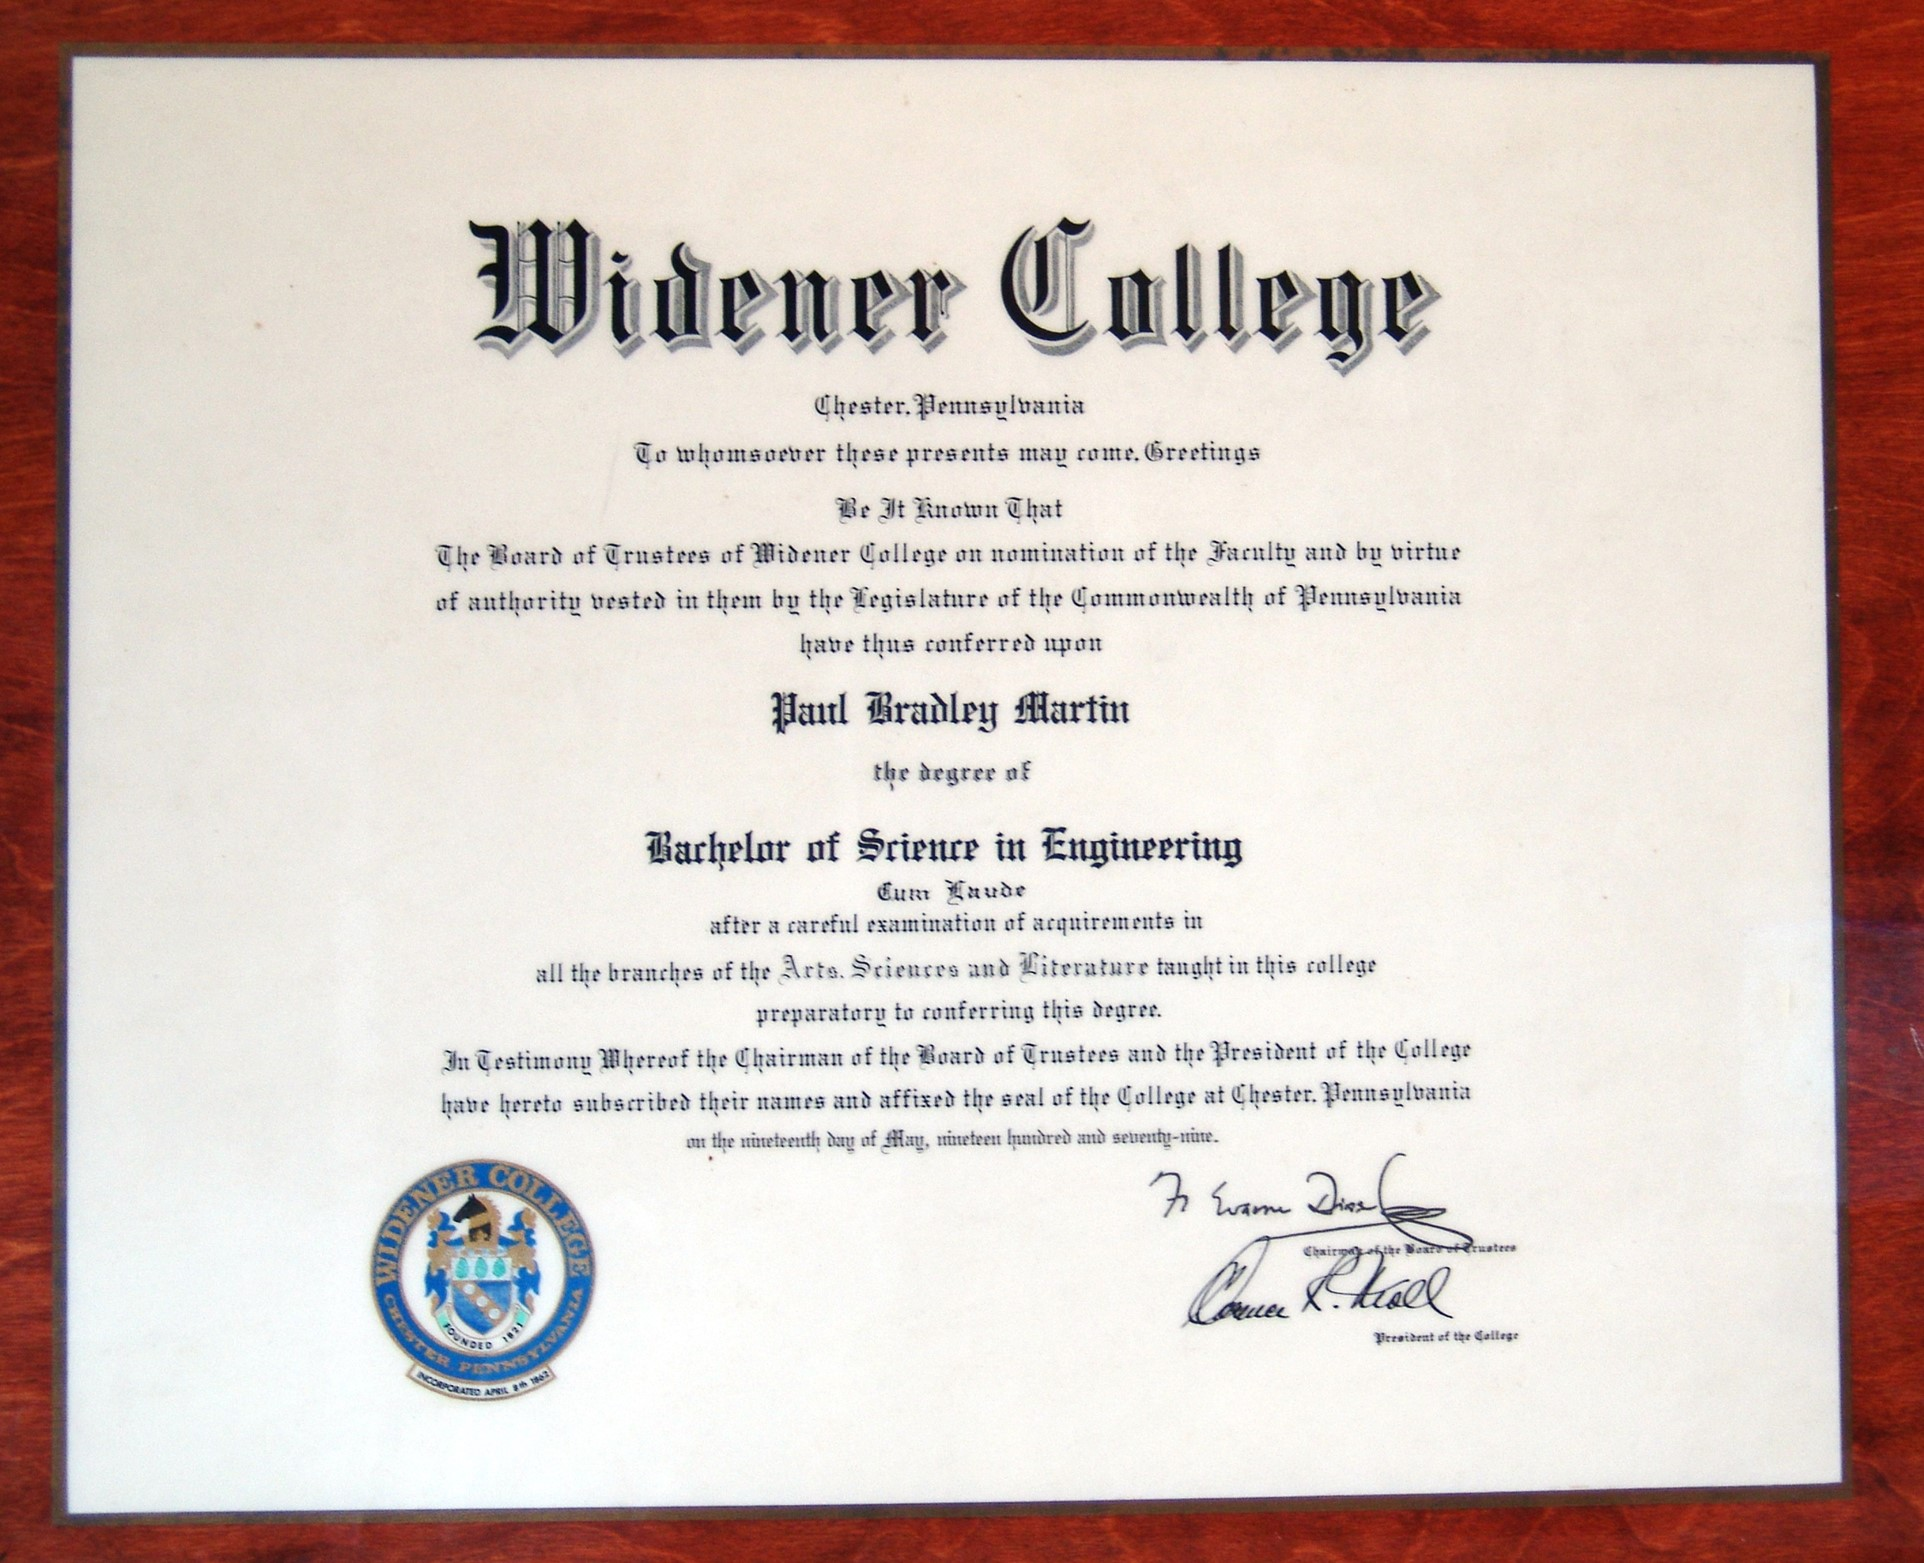 Proof that I graduated from Widener College back in 1979. My mother had the thing laminated.